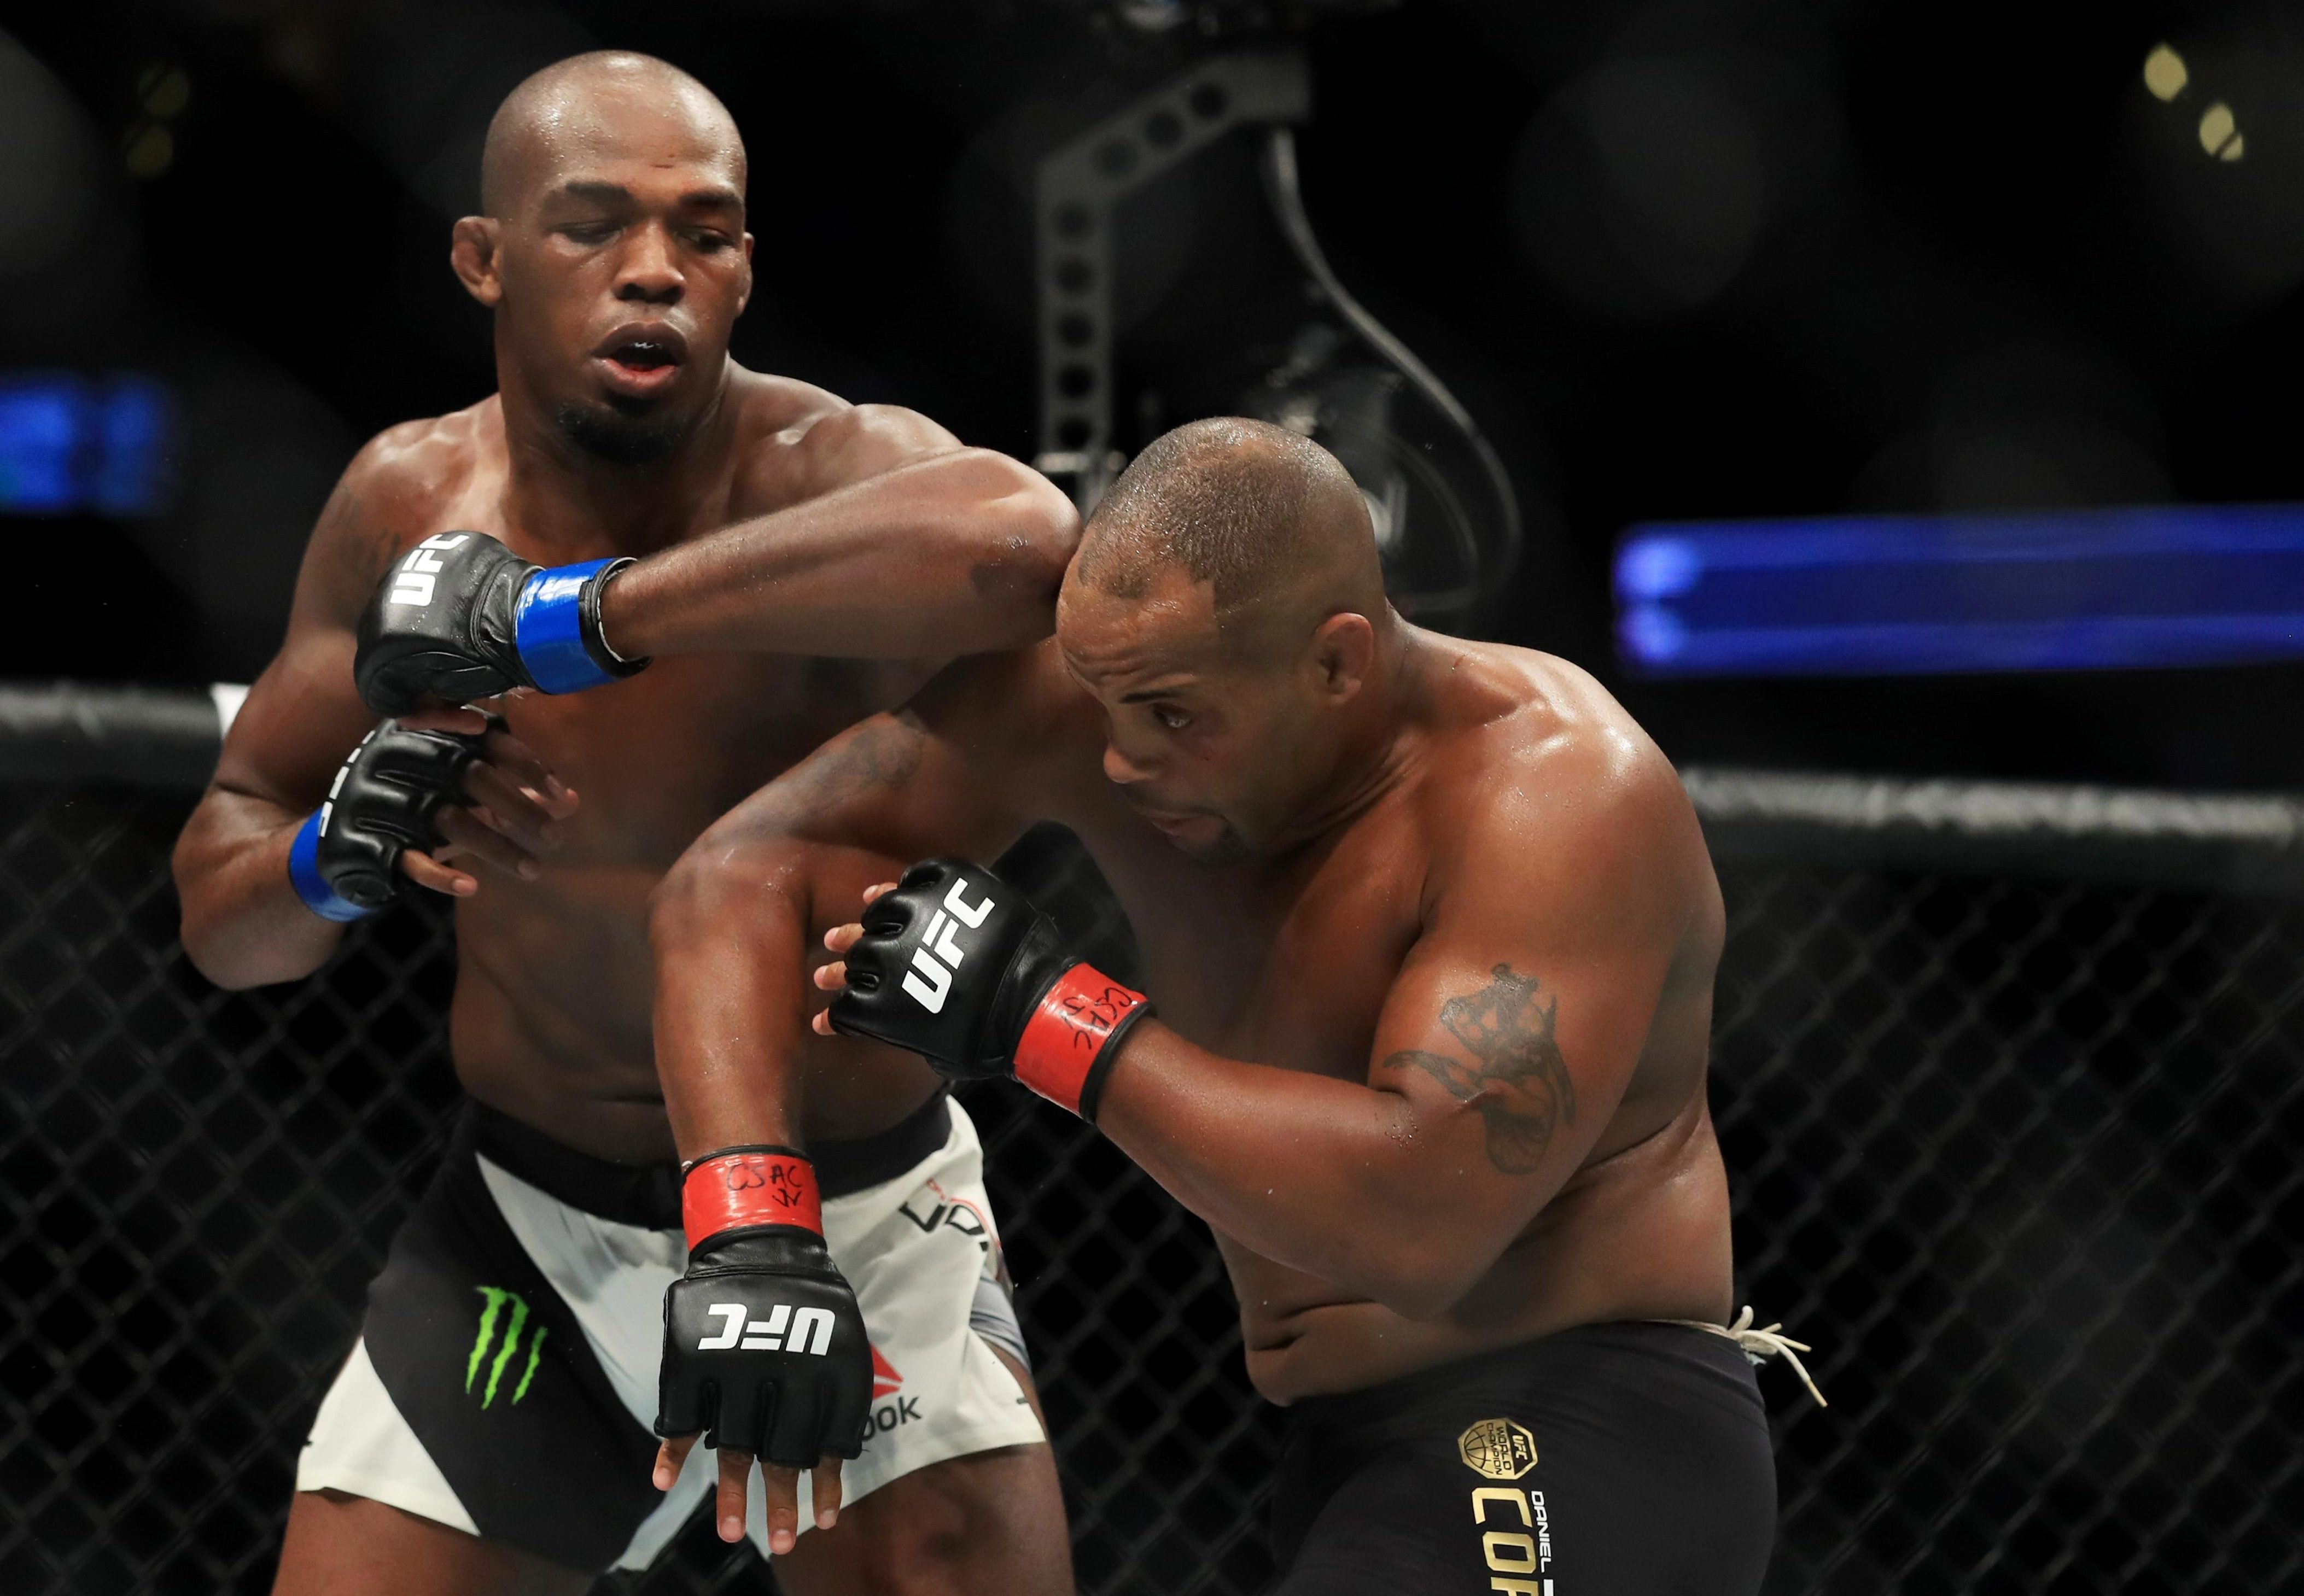 Jon Jones' most recent win over DC was ruled a no contest after he failed a drugs test